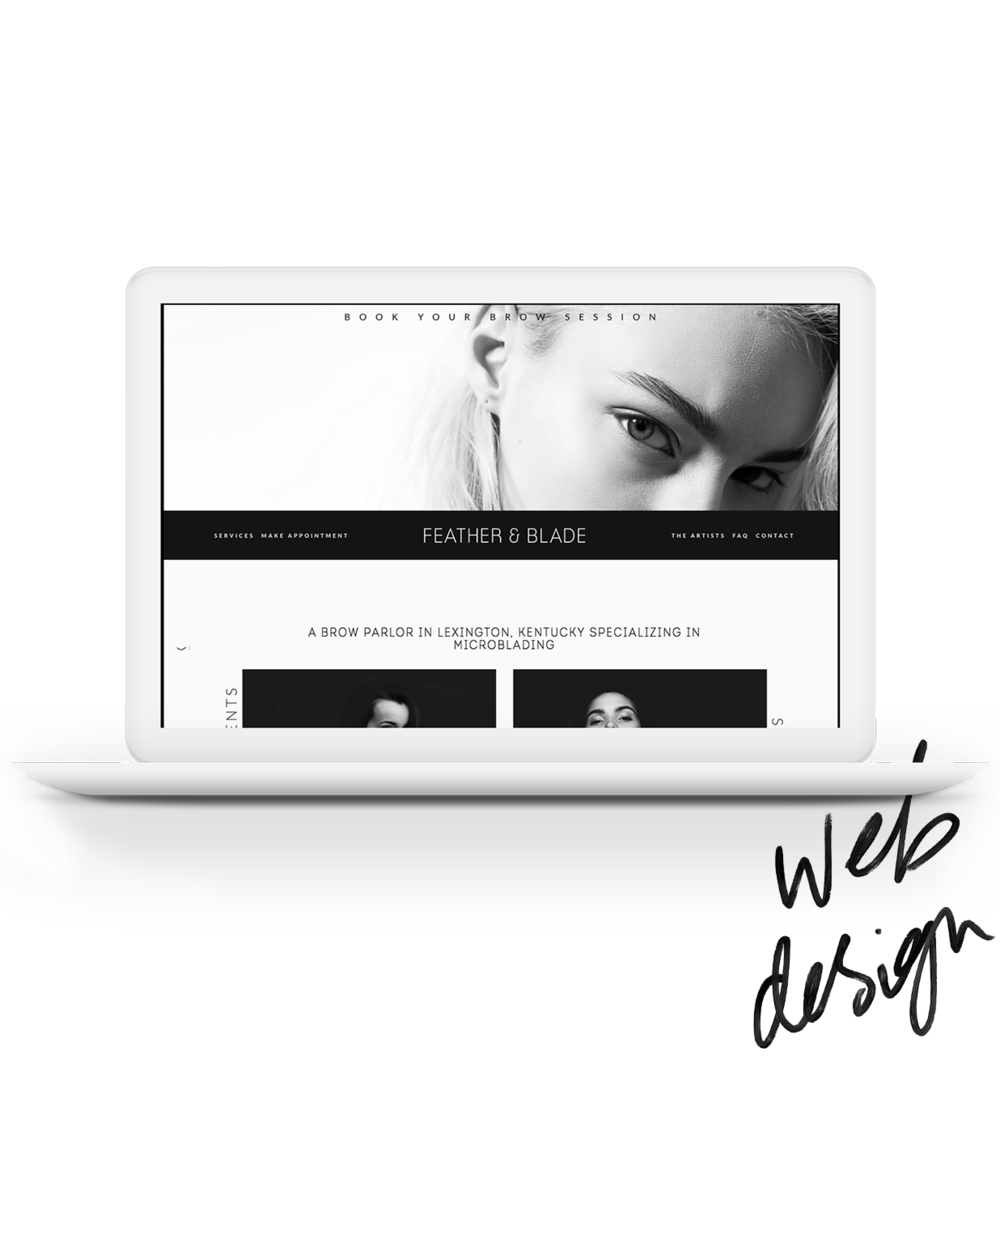 Squarespacedesign - Bring your visual identity to life with a beautiful + mobile responsive website. This will be your new online home- where you'll connect with your audience, share your content and show off your stunning brand personality and visuals. Your online home is the nucleus of your brand. You'll want to have a site that is easy to update as you grow + easy for your audience to interact with.  Let's work together to build a custom squarespace site that breaks out of the box so you can shine a bit brighter.